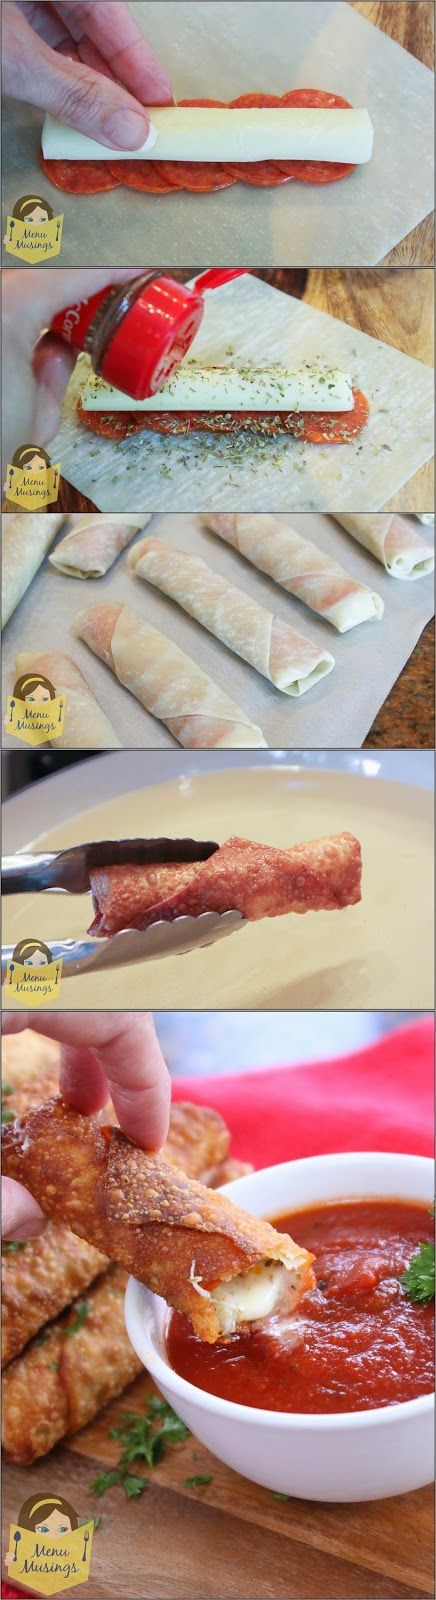 Happy Hour Pizza Rolls - Super easy pepperoni pizza rolls made from egg roll wrappers and served with warm pizza sauce. Step-by-step photos! Appetizer heaven!